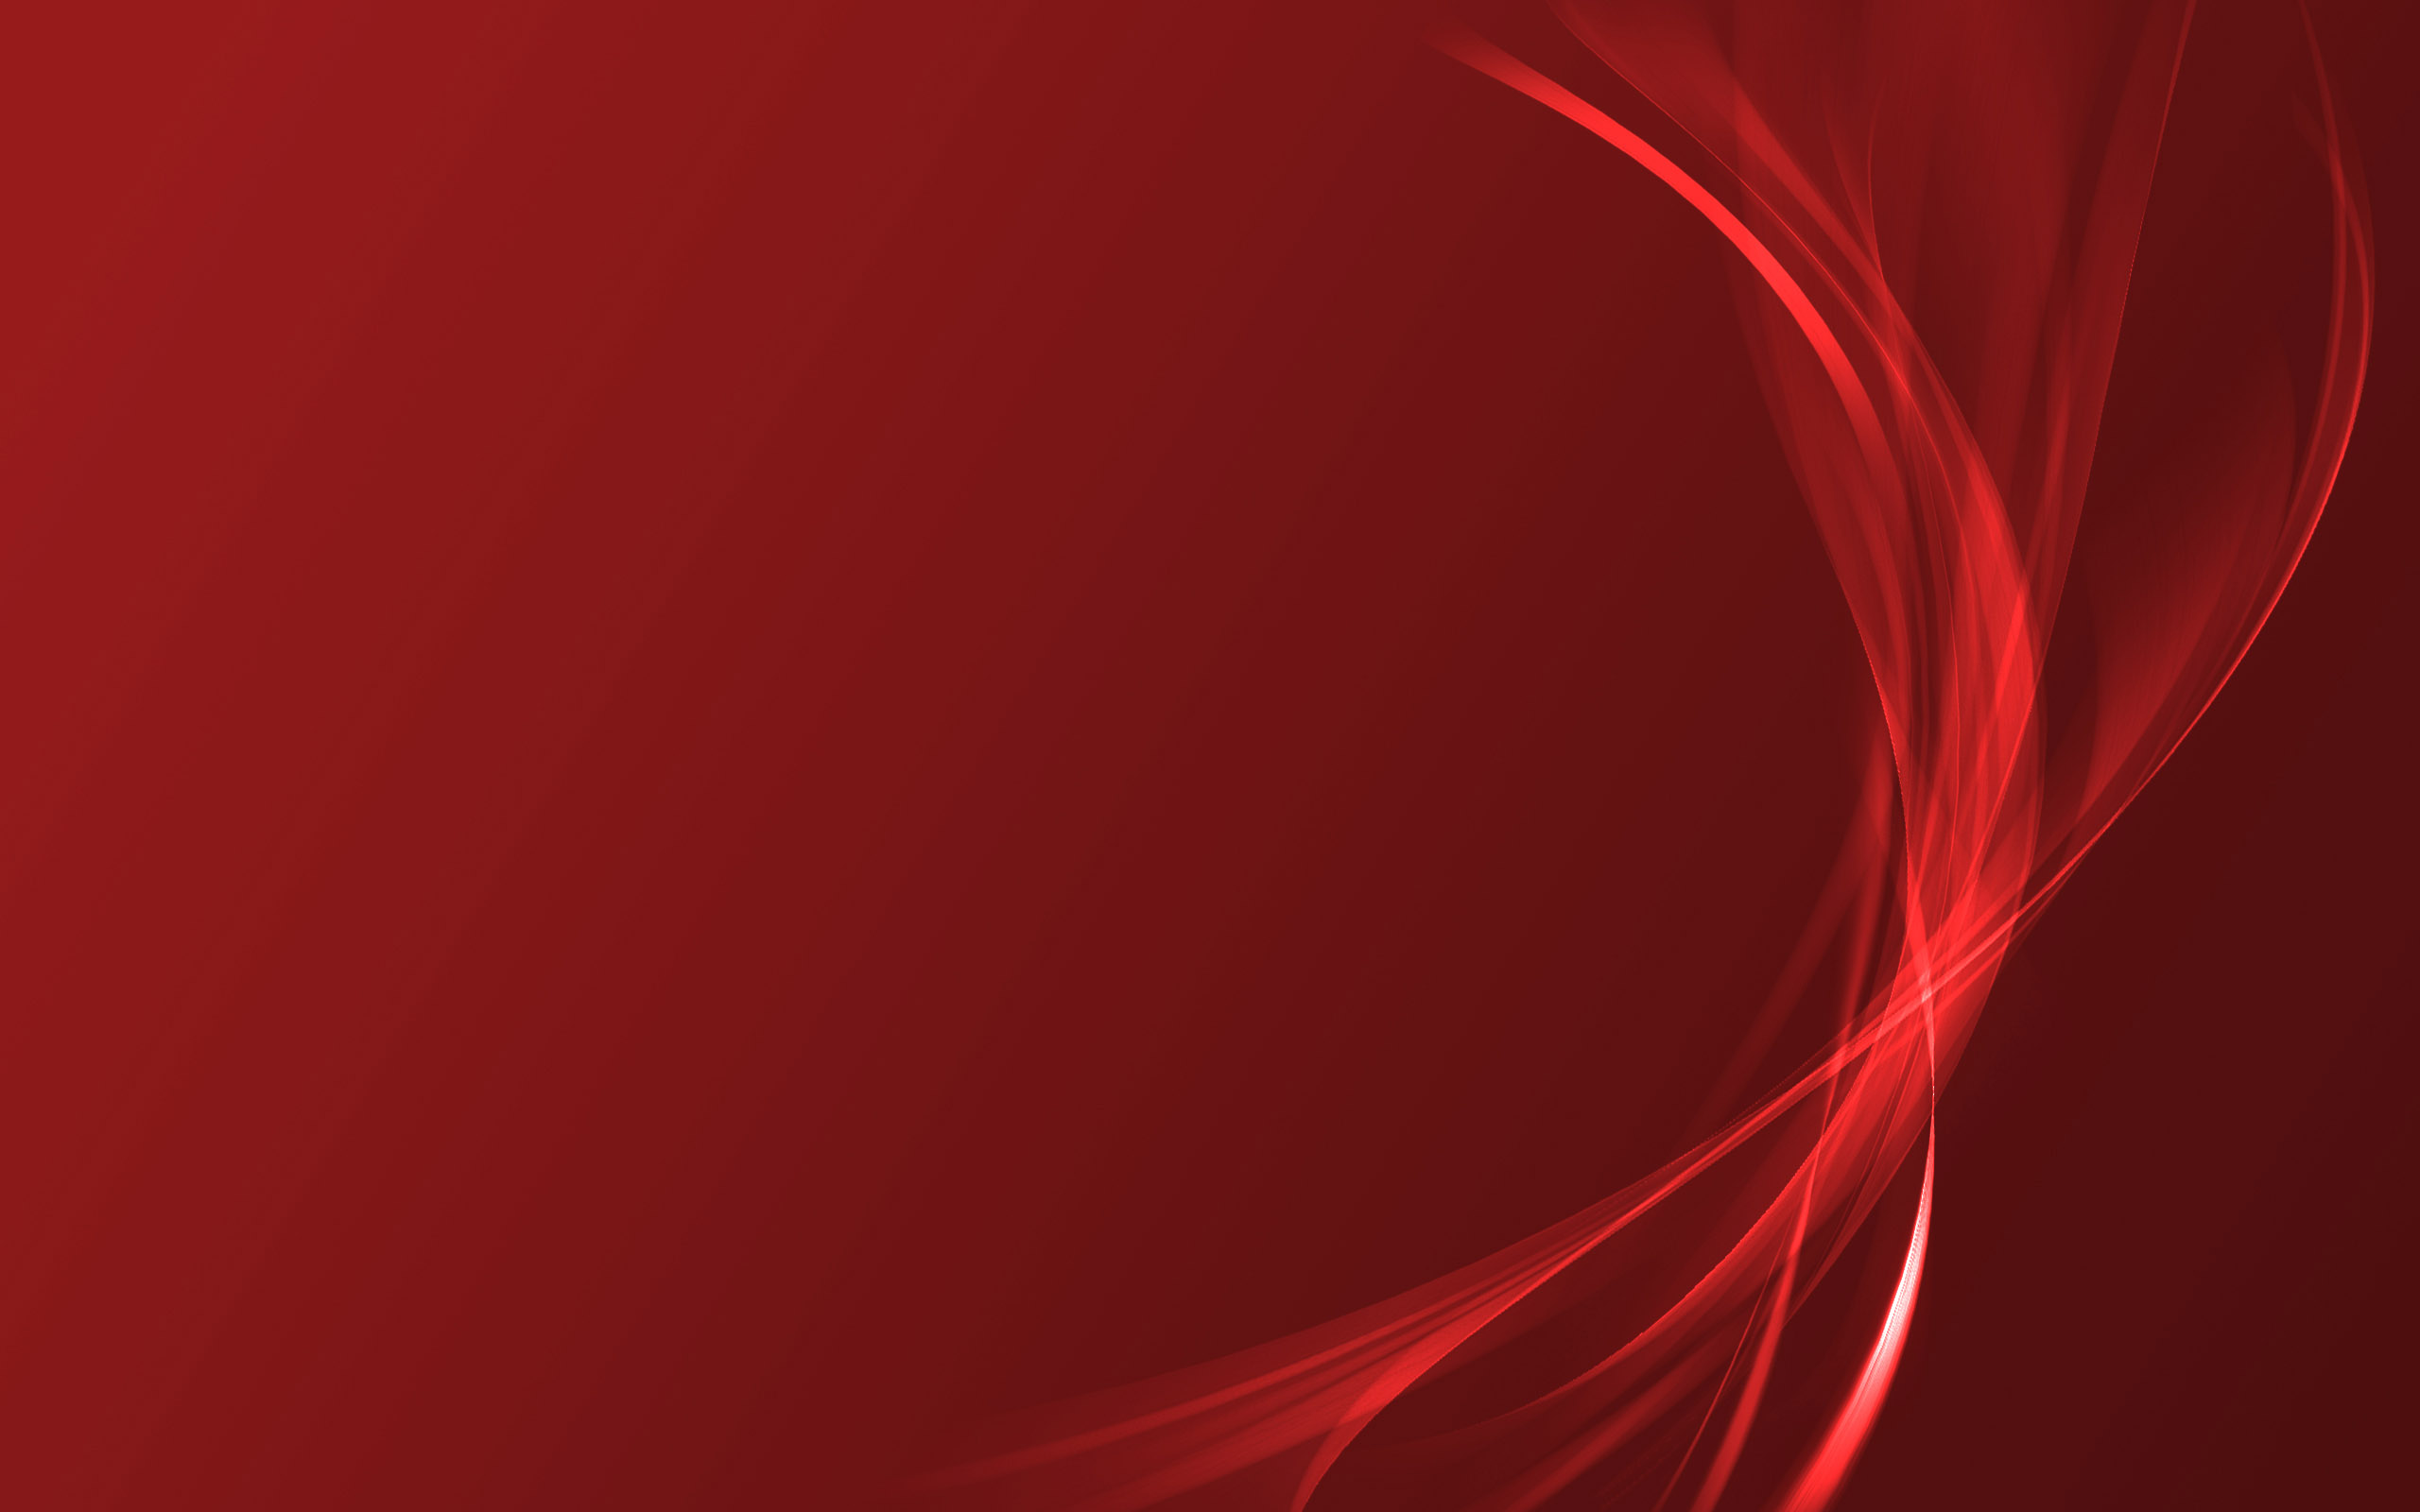 red background color maroon 77461 hd wallpaper backgrounds download red background color maroon 77461